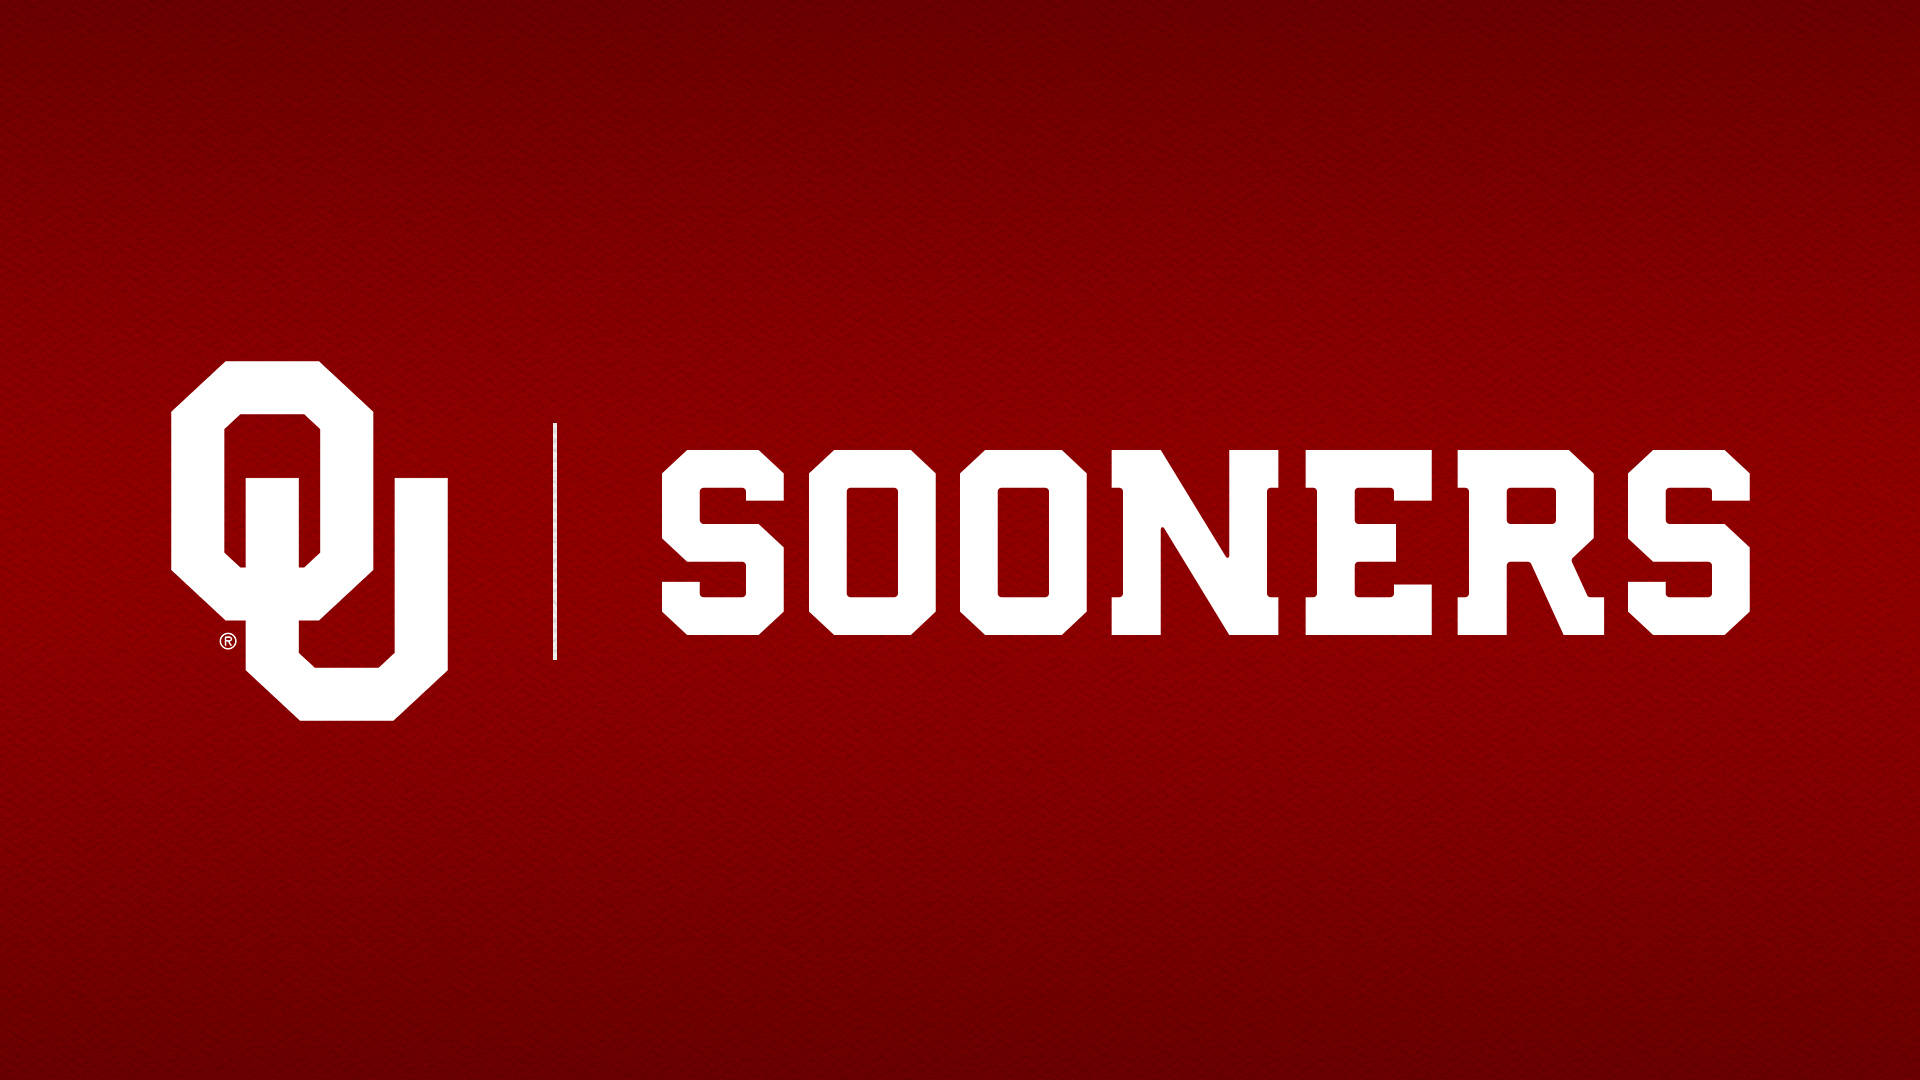 OU Refreshes Official Marks - University of Oklahoma